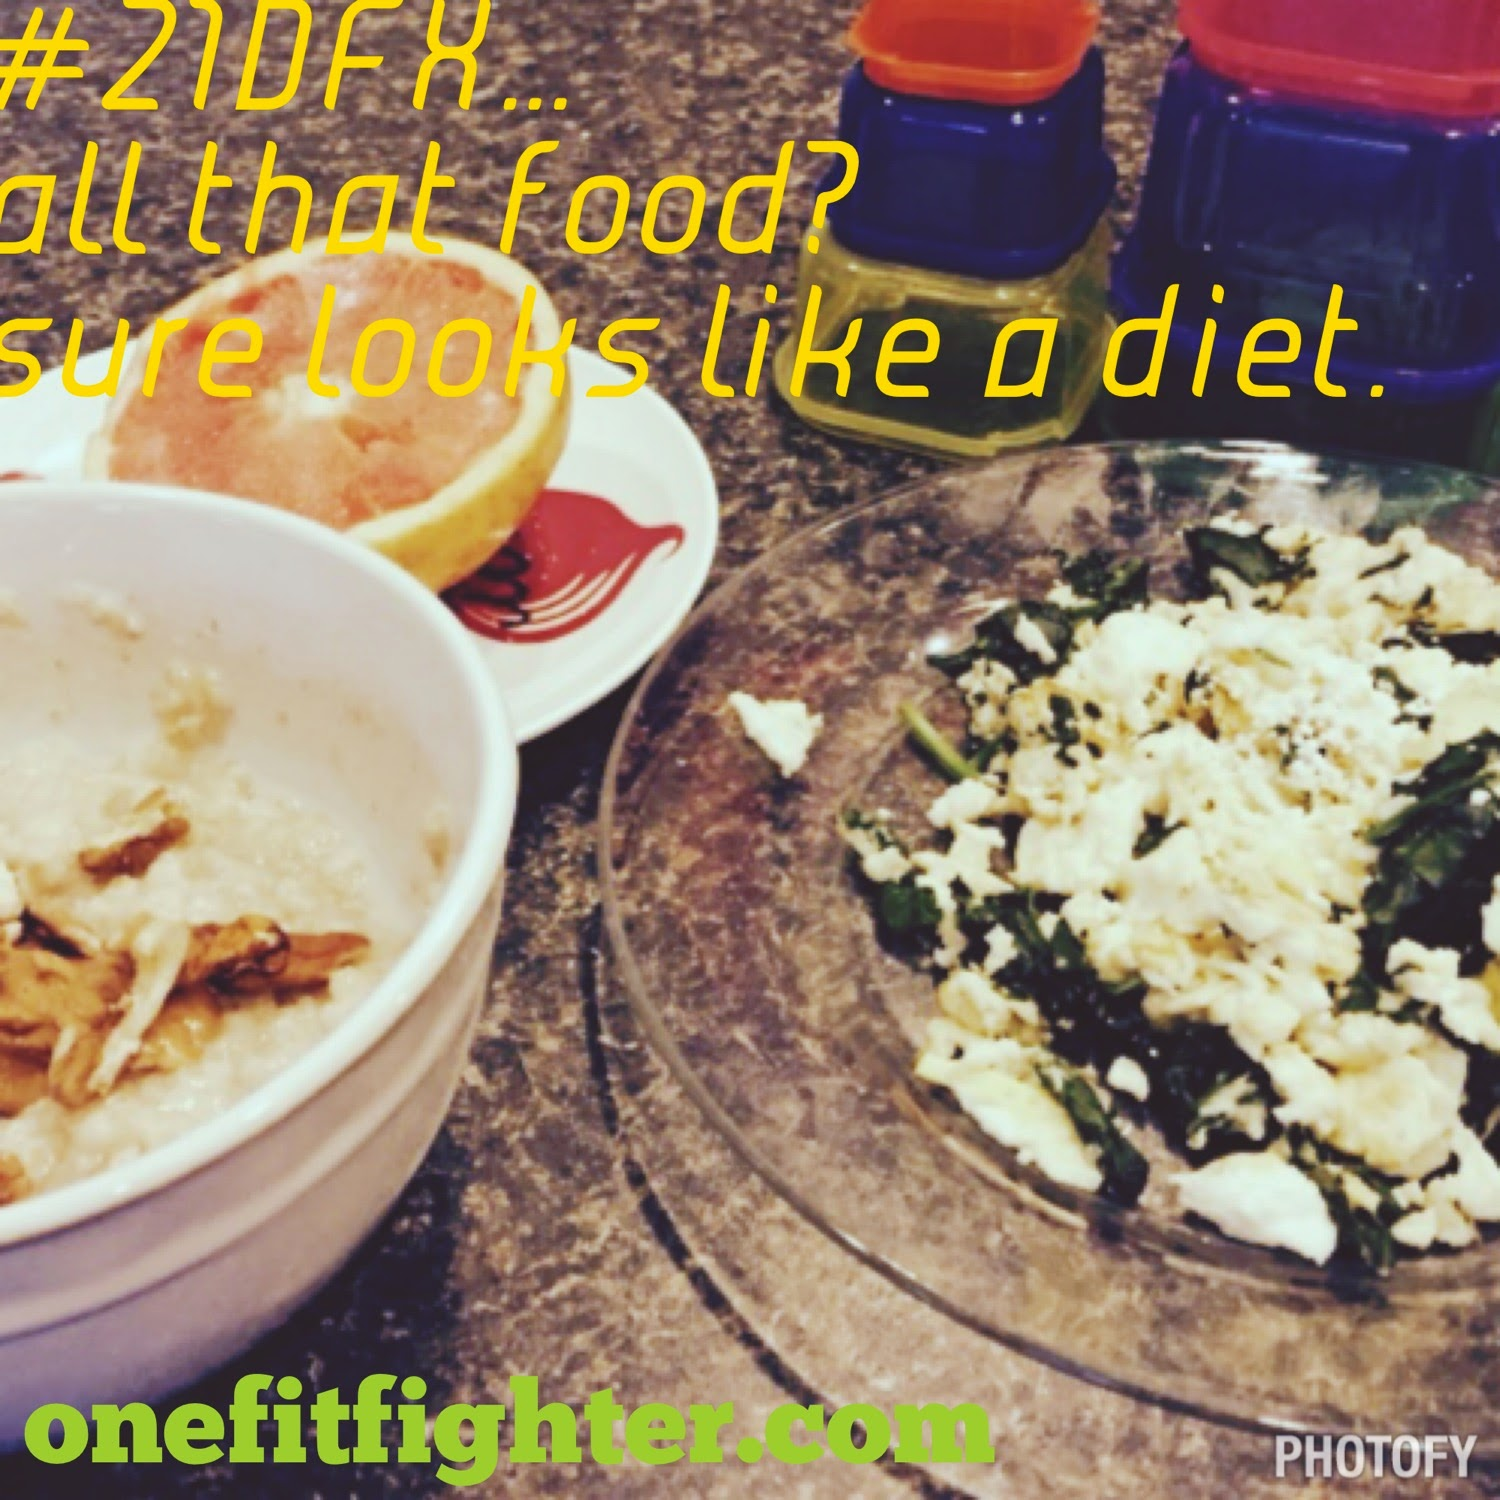 meal ideas 21 day fix, what is the 21 day fix